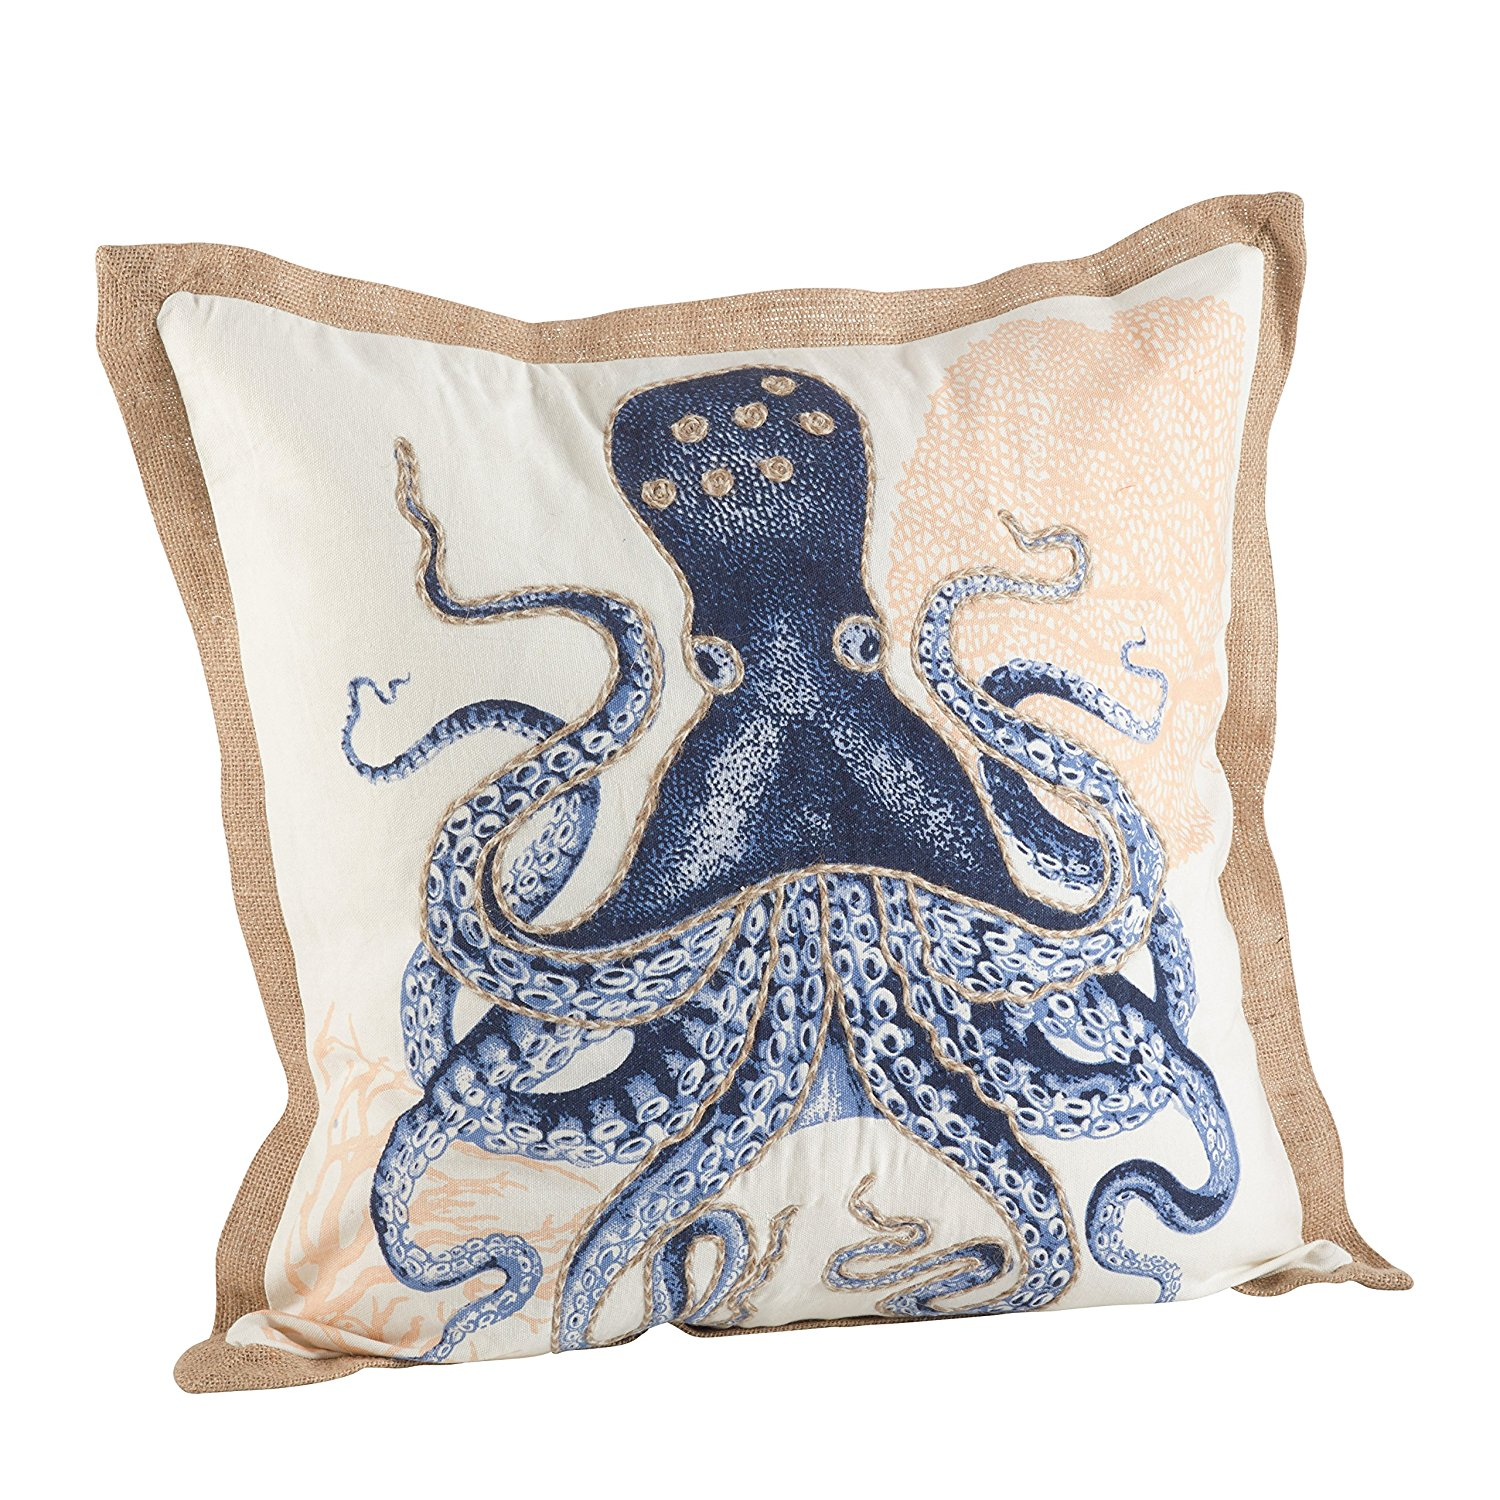 Throw Pillows Nordstrom : Nautical Down Filled Throw Pillow (Octopus) Salty Home